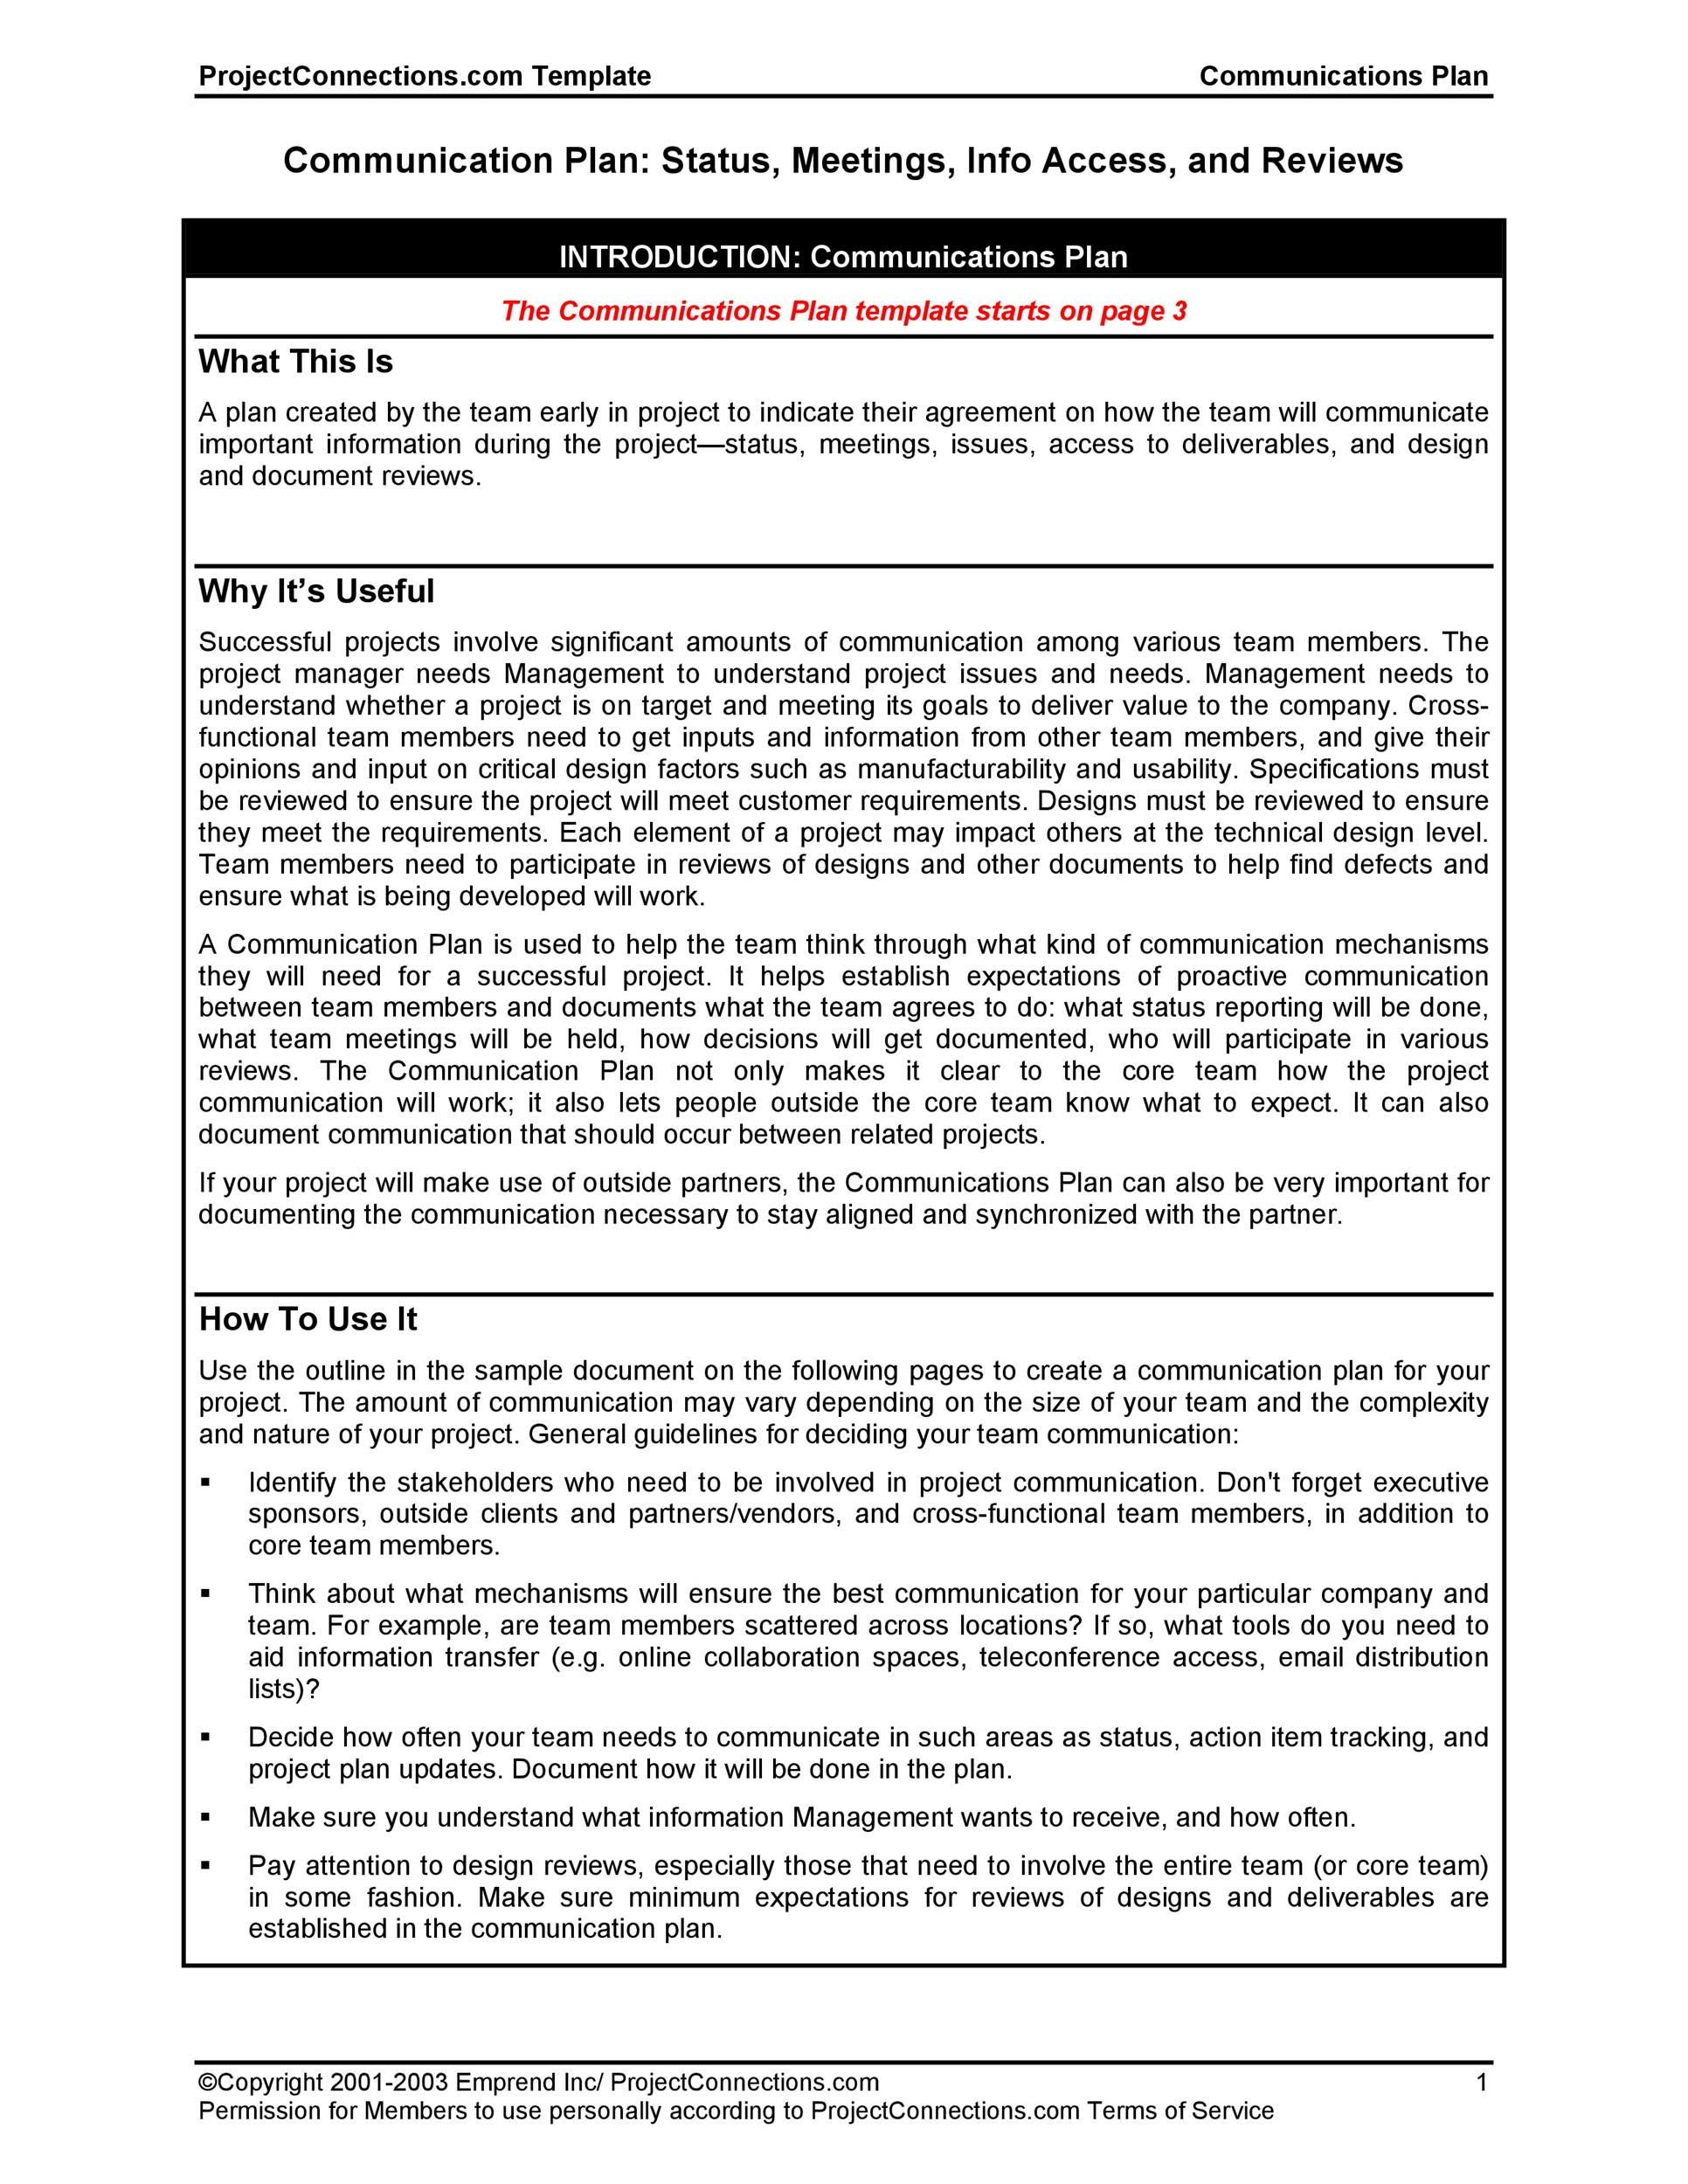 Free Communication Plan Template 14